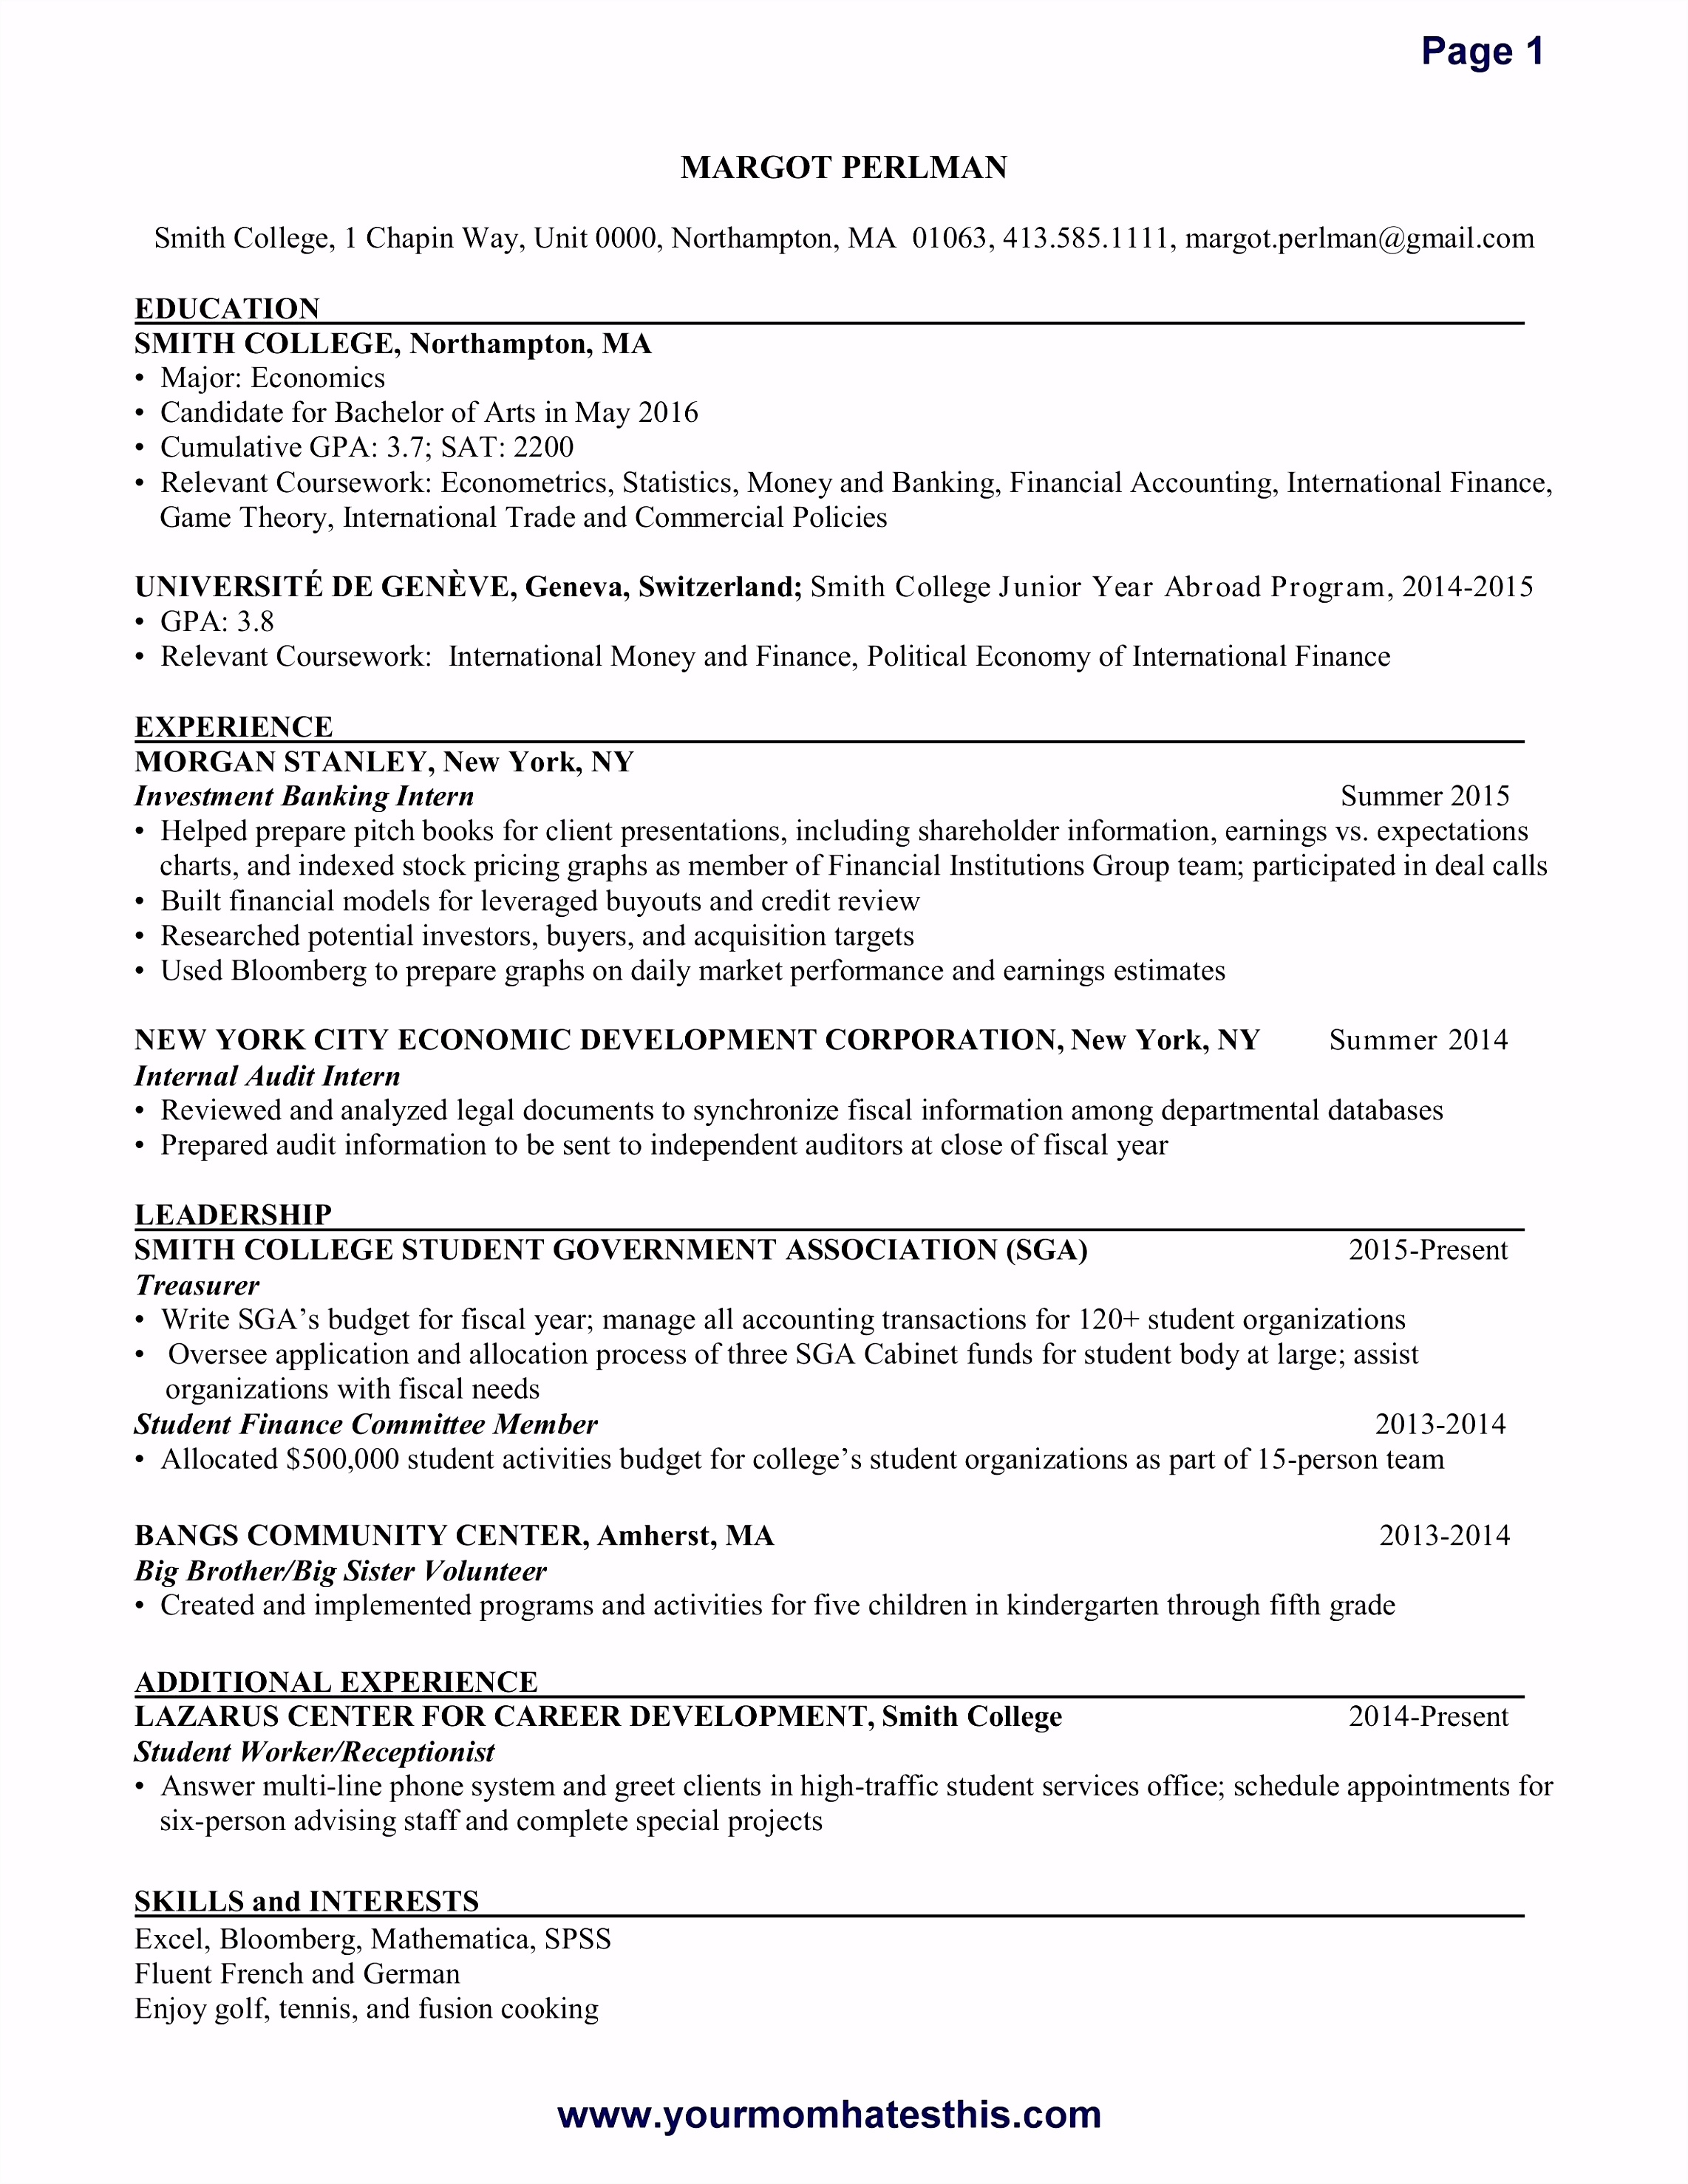 Cv Schreiben Vorlage theory Change Template Good Cv Layout Beautiful